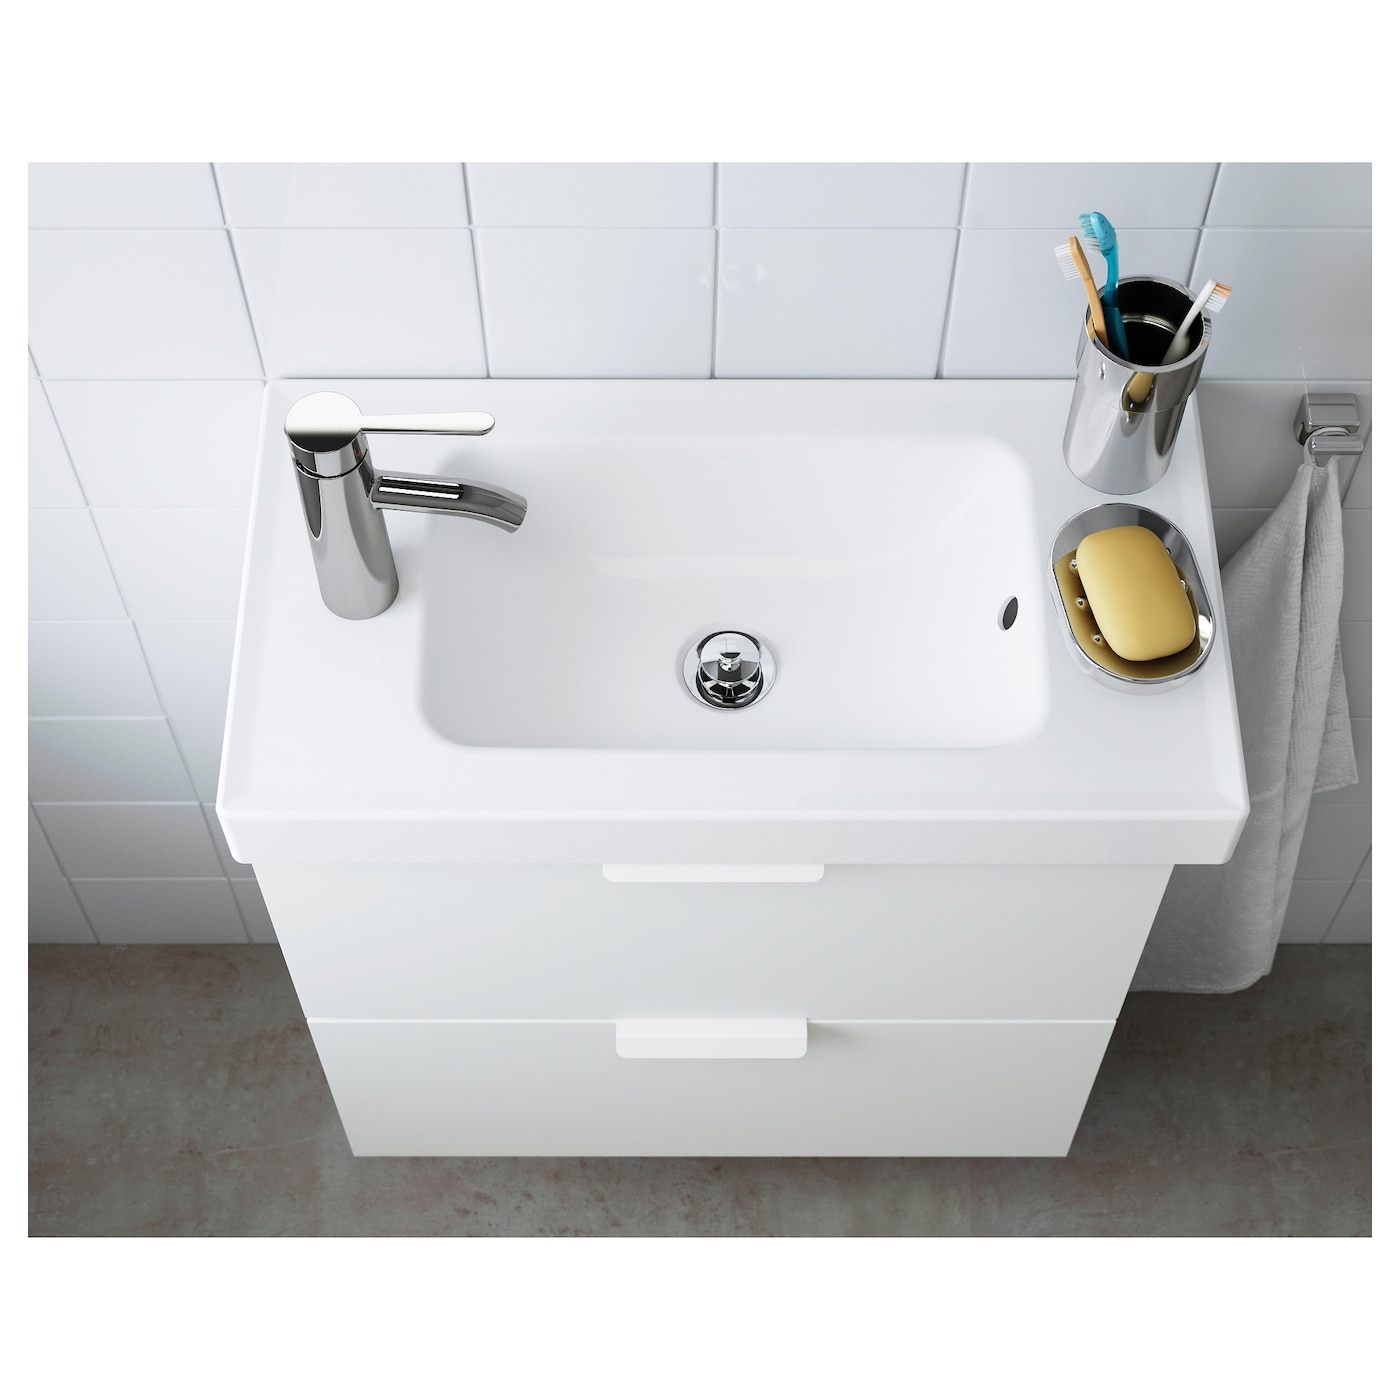 Hagaviken single wash basin white 63 cm ikea - Lavello bagno ikea ...